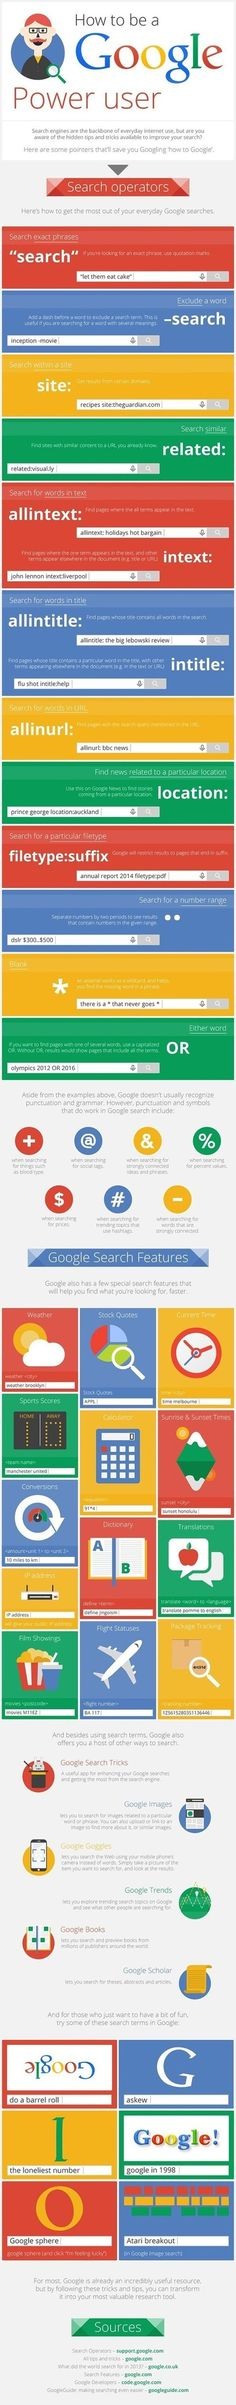 46 Hidden Tips and Tricks to Use Google Search Like a Boss: Infographic | Educación Matemática | Scoop.it